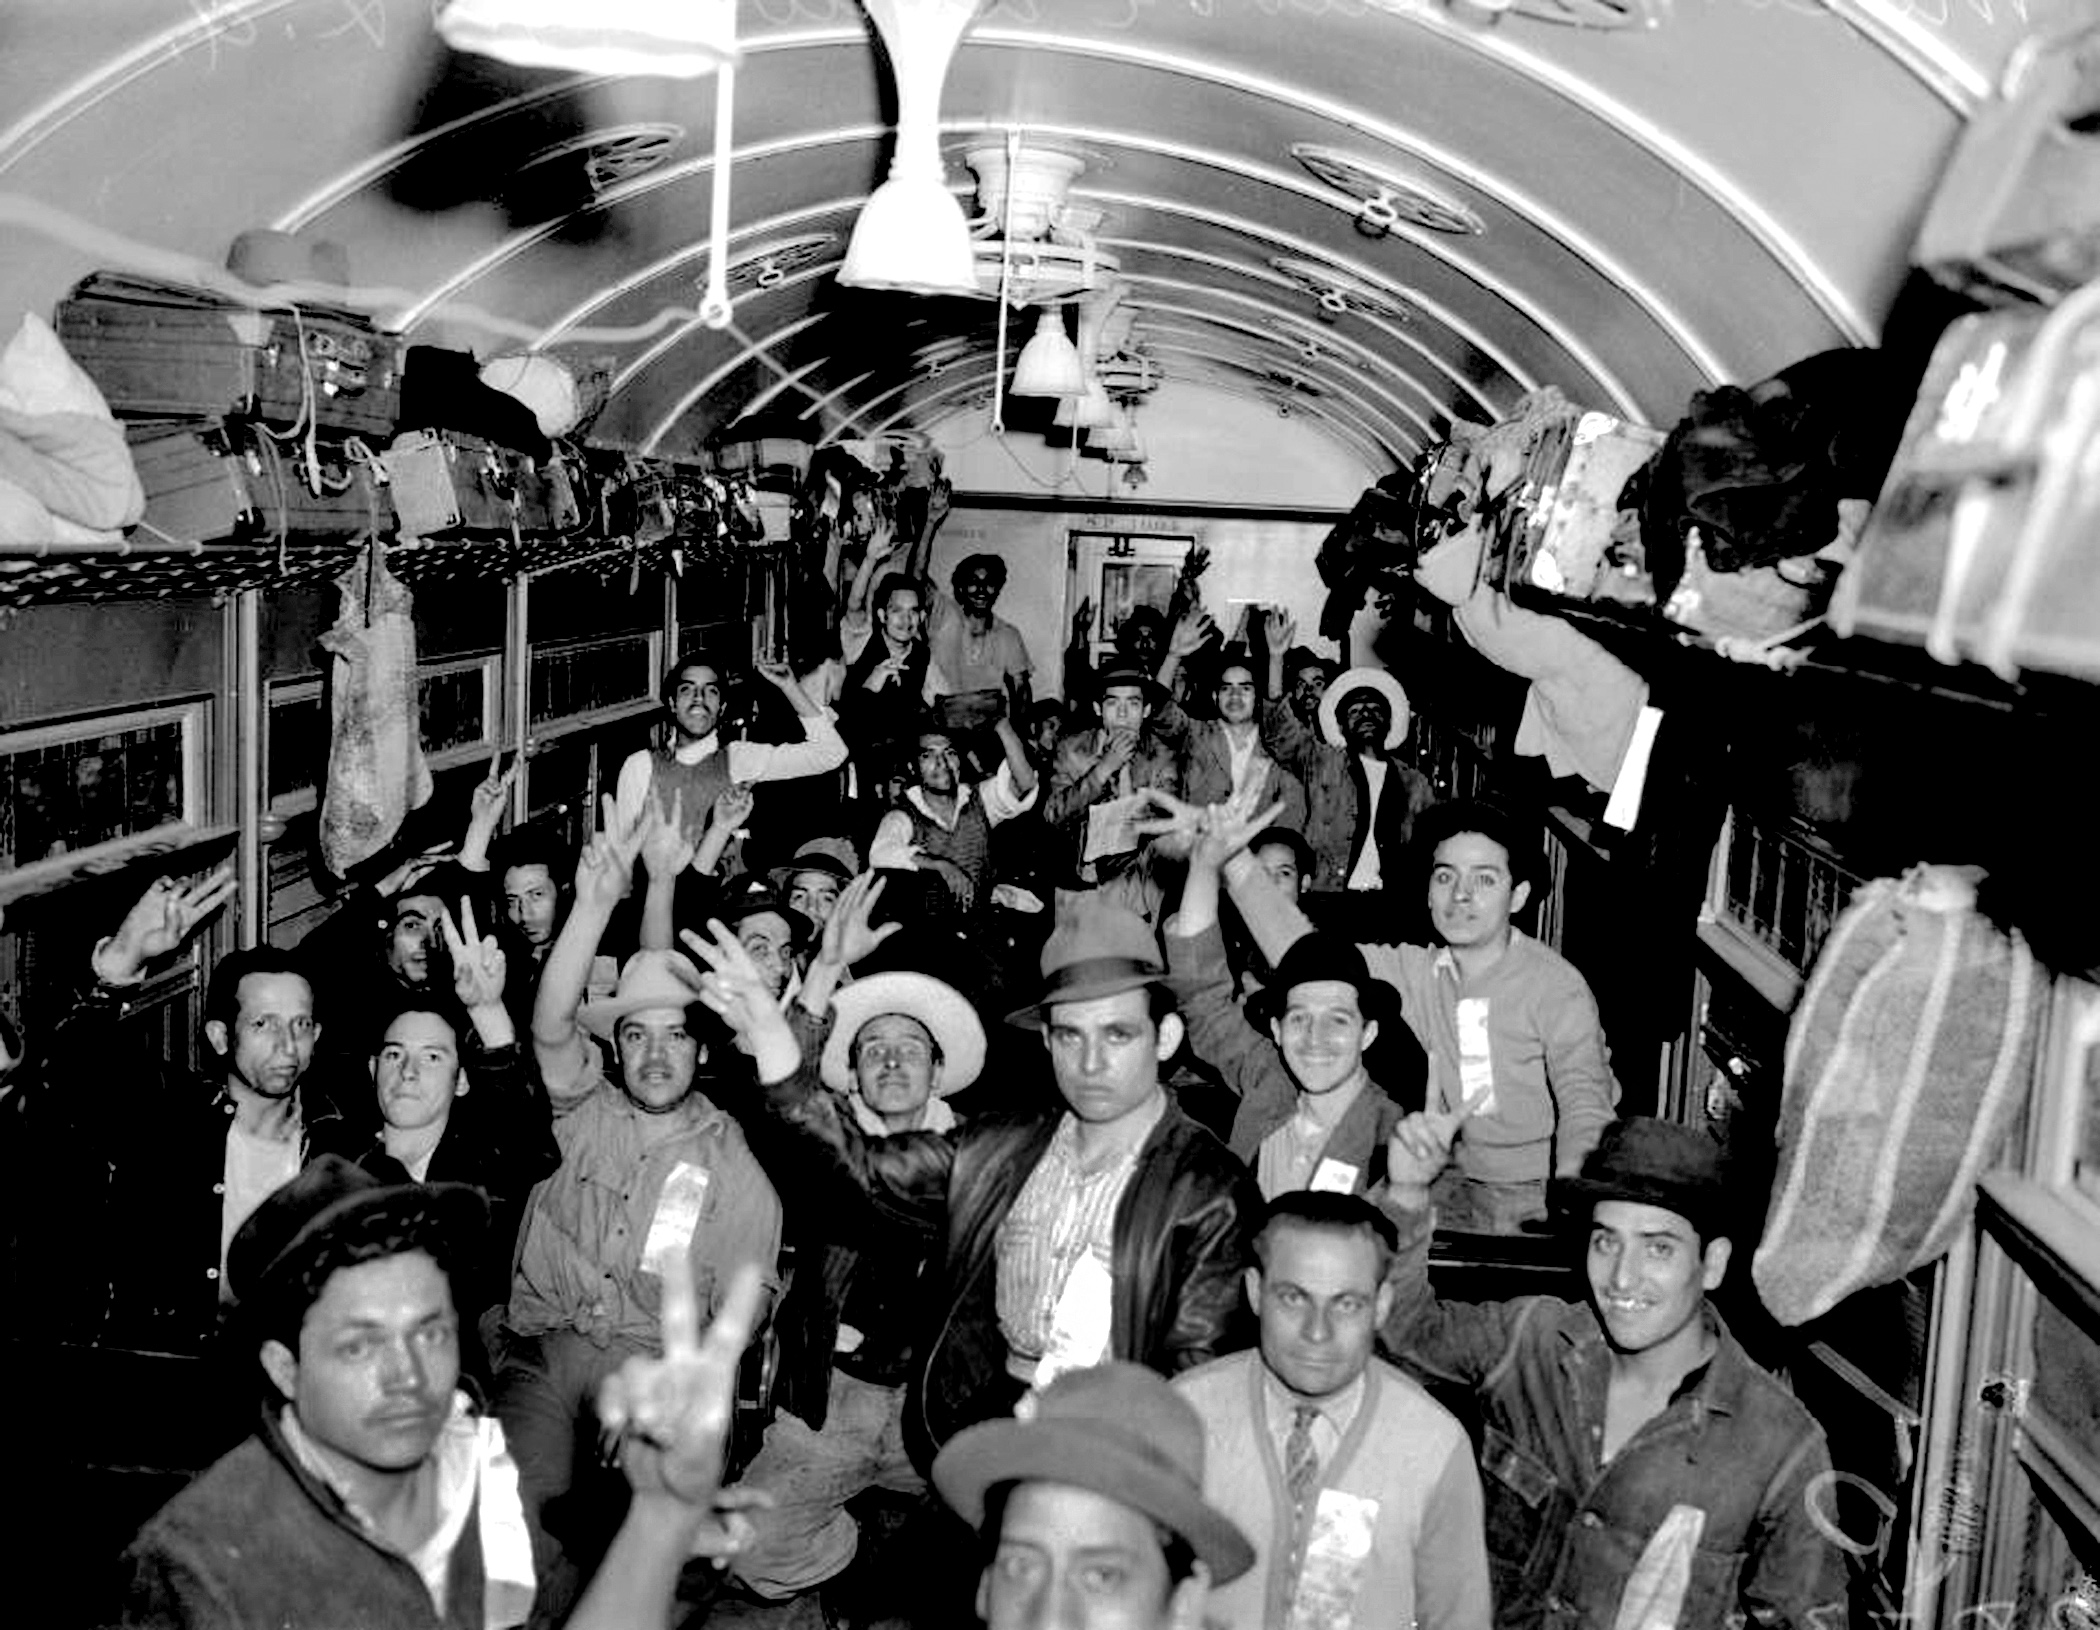 Mexican workers arrive in L.A. by train (1943)